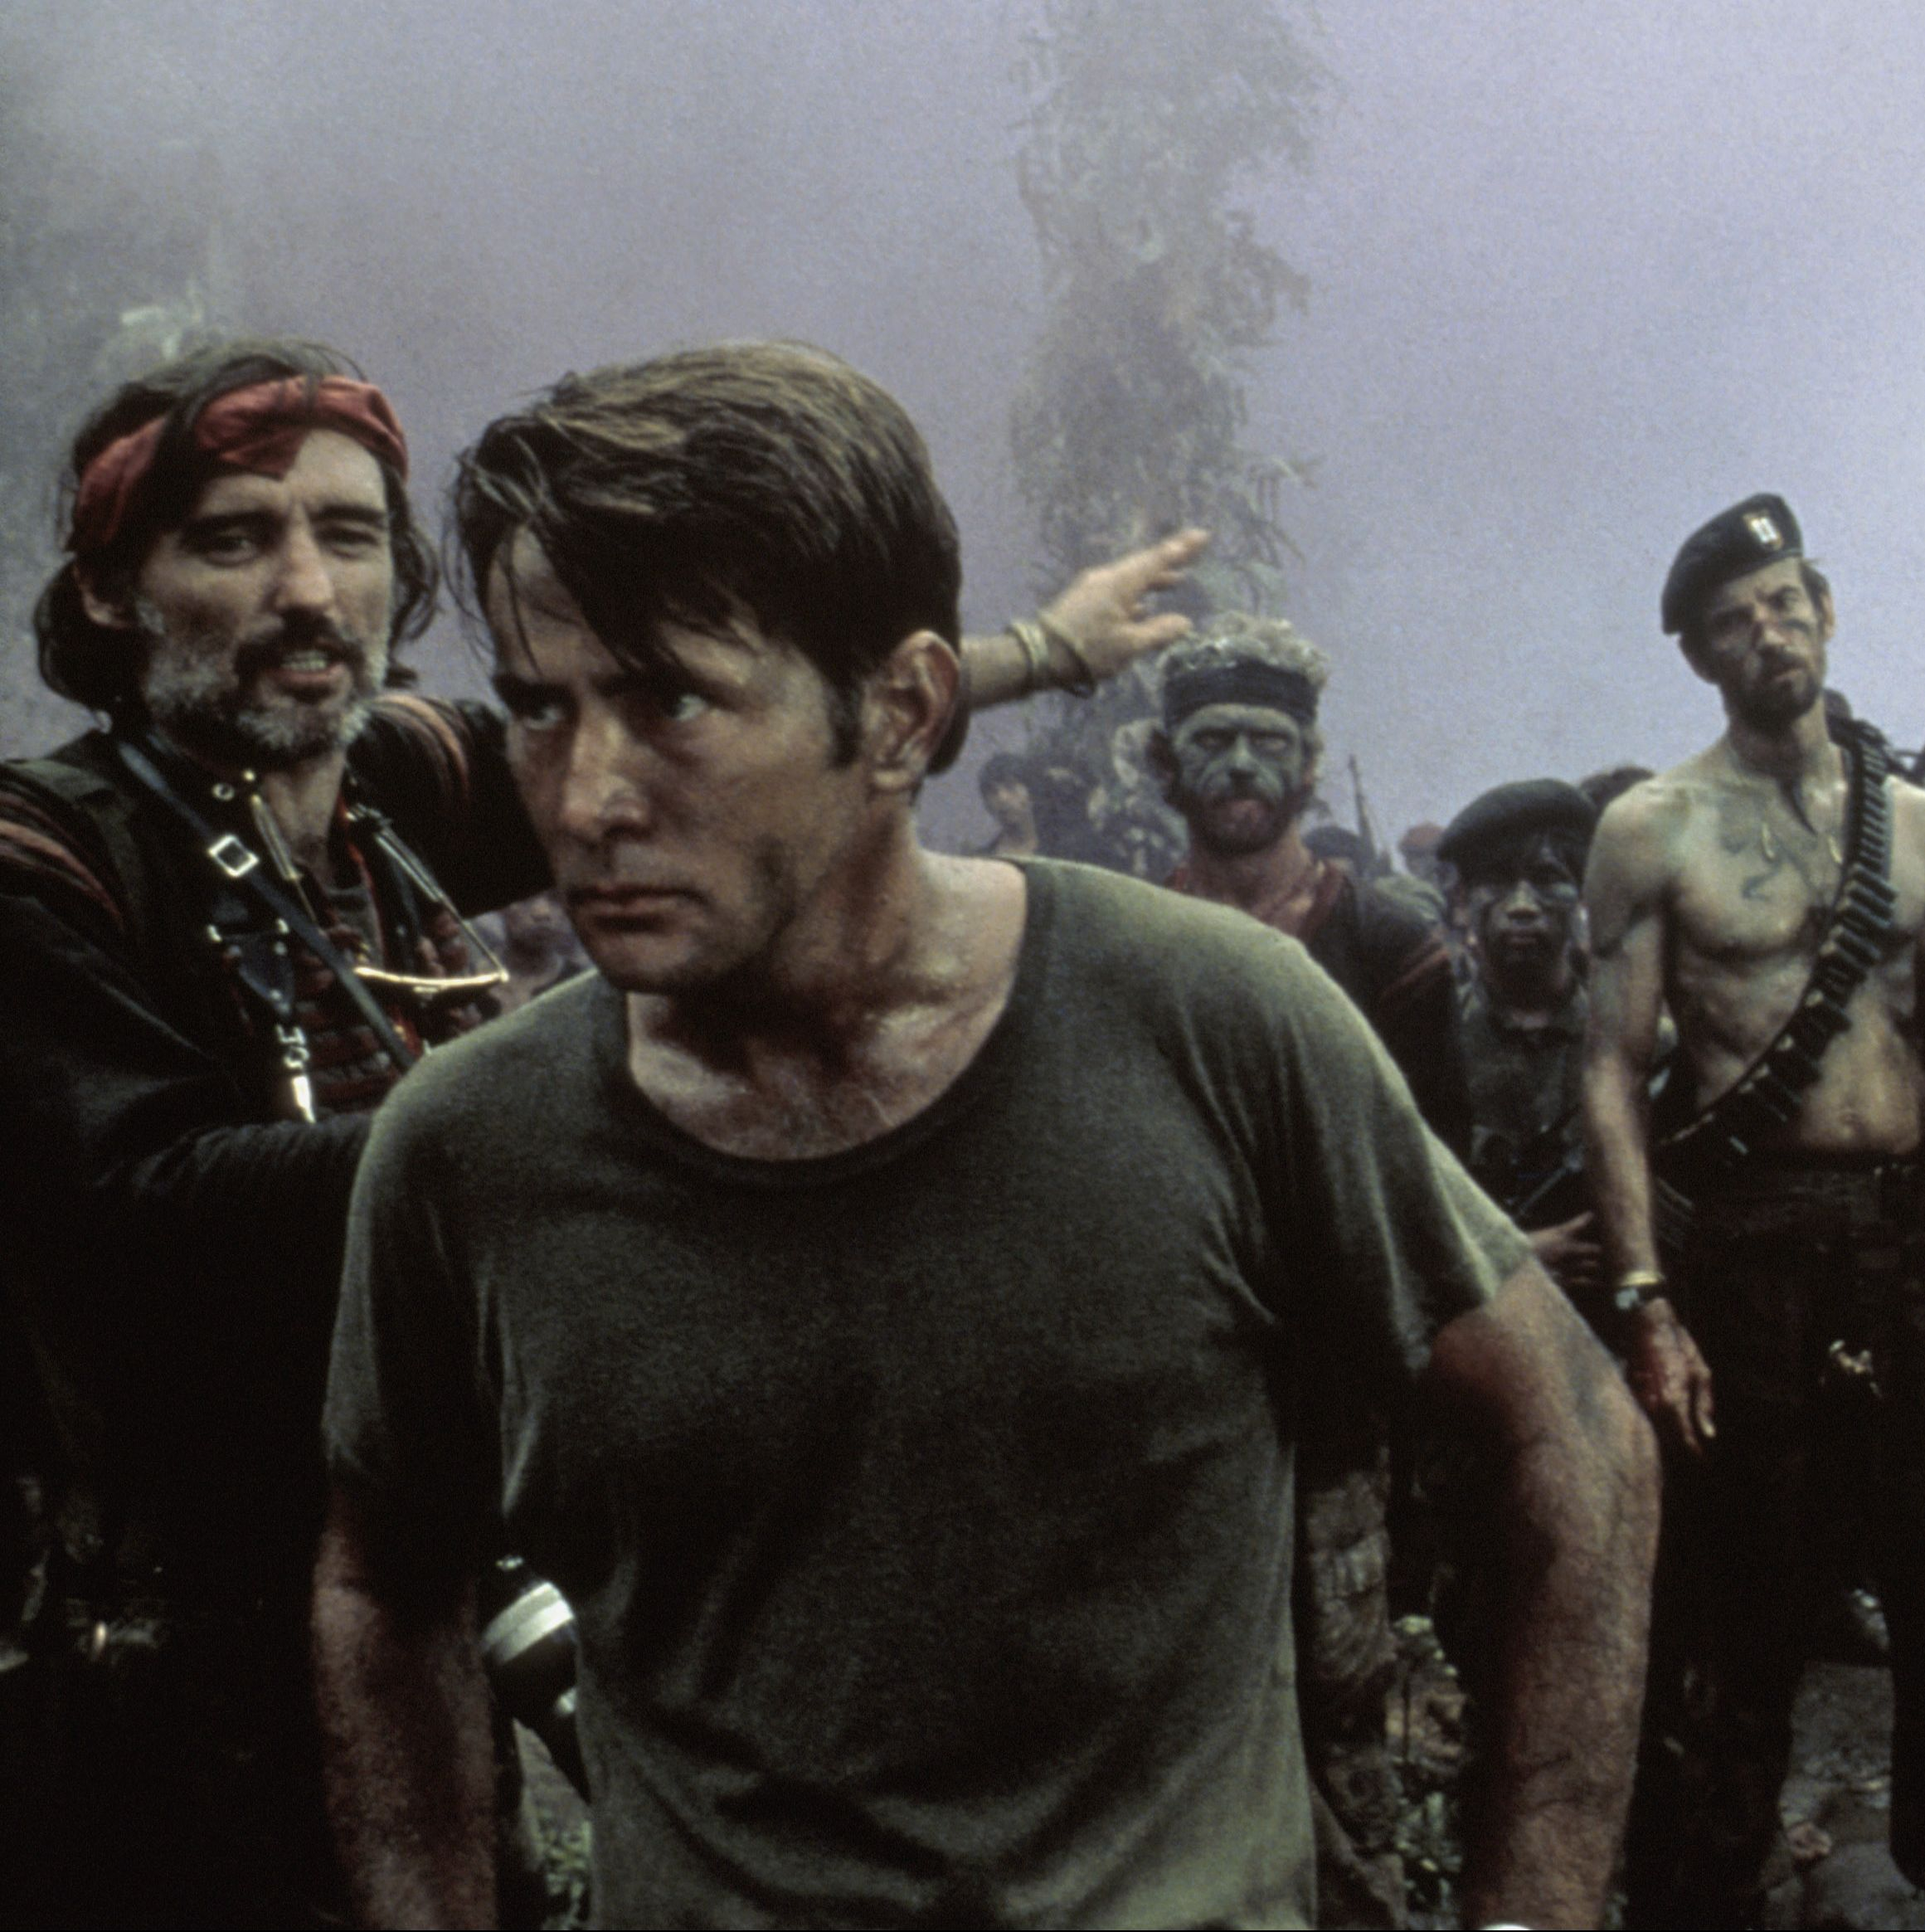 Apocalypse Now Martin Sheen stars as a disaffected Army captain who is tasked with a secret mission to go deep into the jungle and take out a Green Beret Colonel named Kurtz (Marlon Brando), who has gone rogue and established himself as a local god.